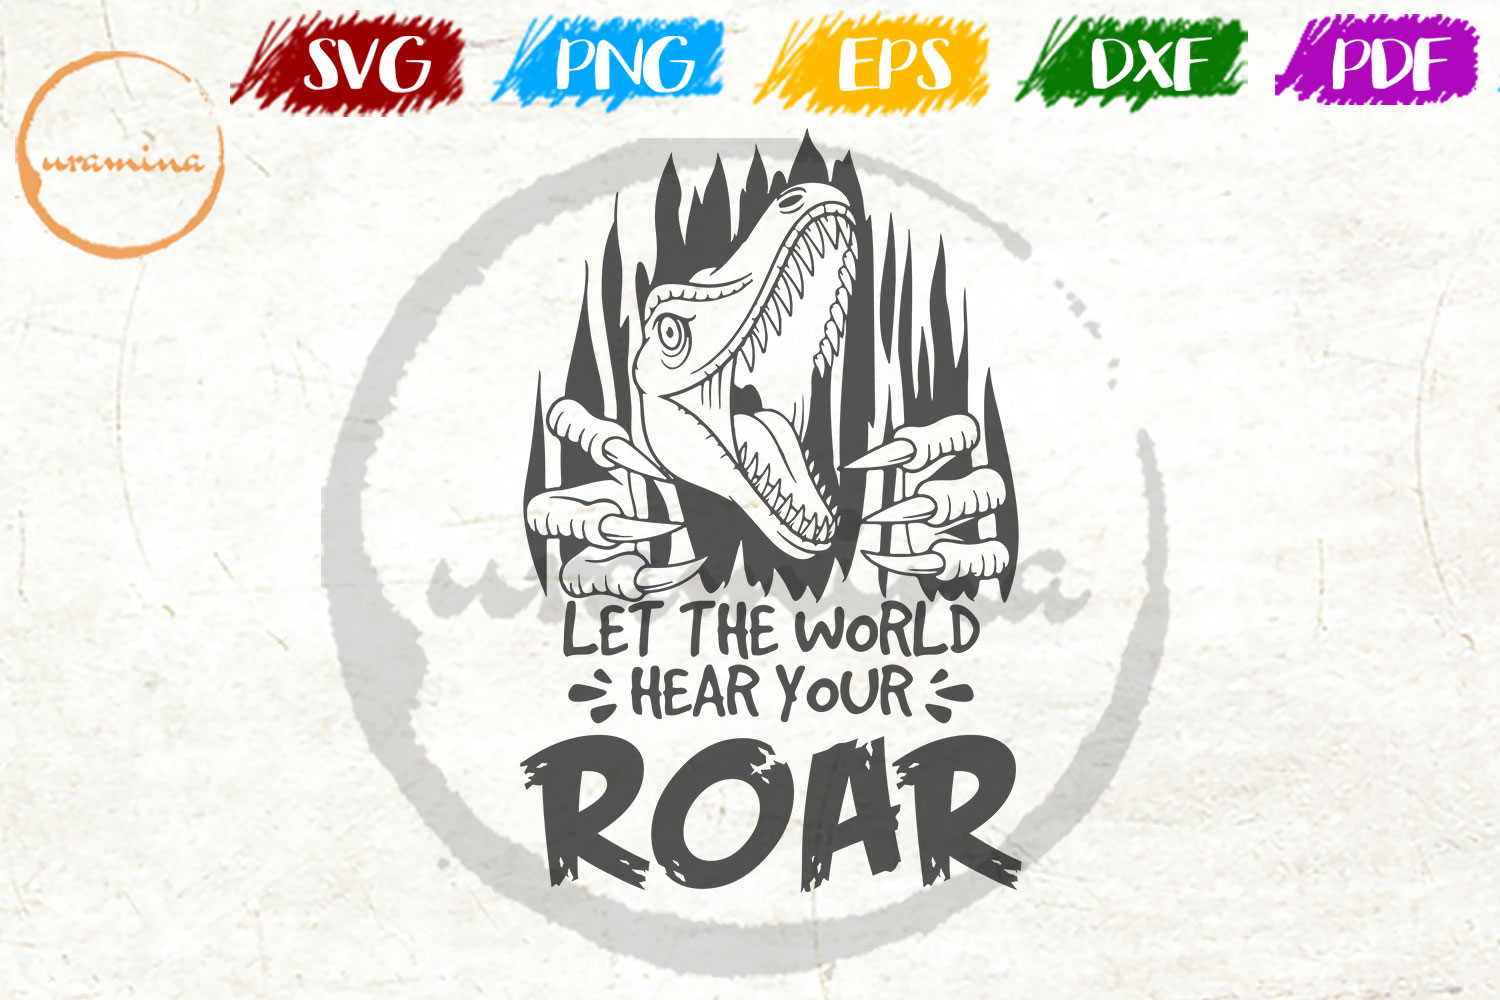 Download Free Let The World Hear You Roar Graphic By Uramina Creative Fabrica for Cricut Explore, Silhouette and other cutting machines.